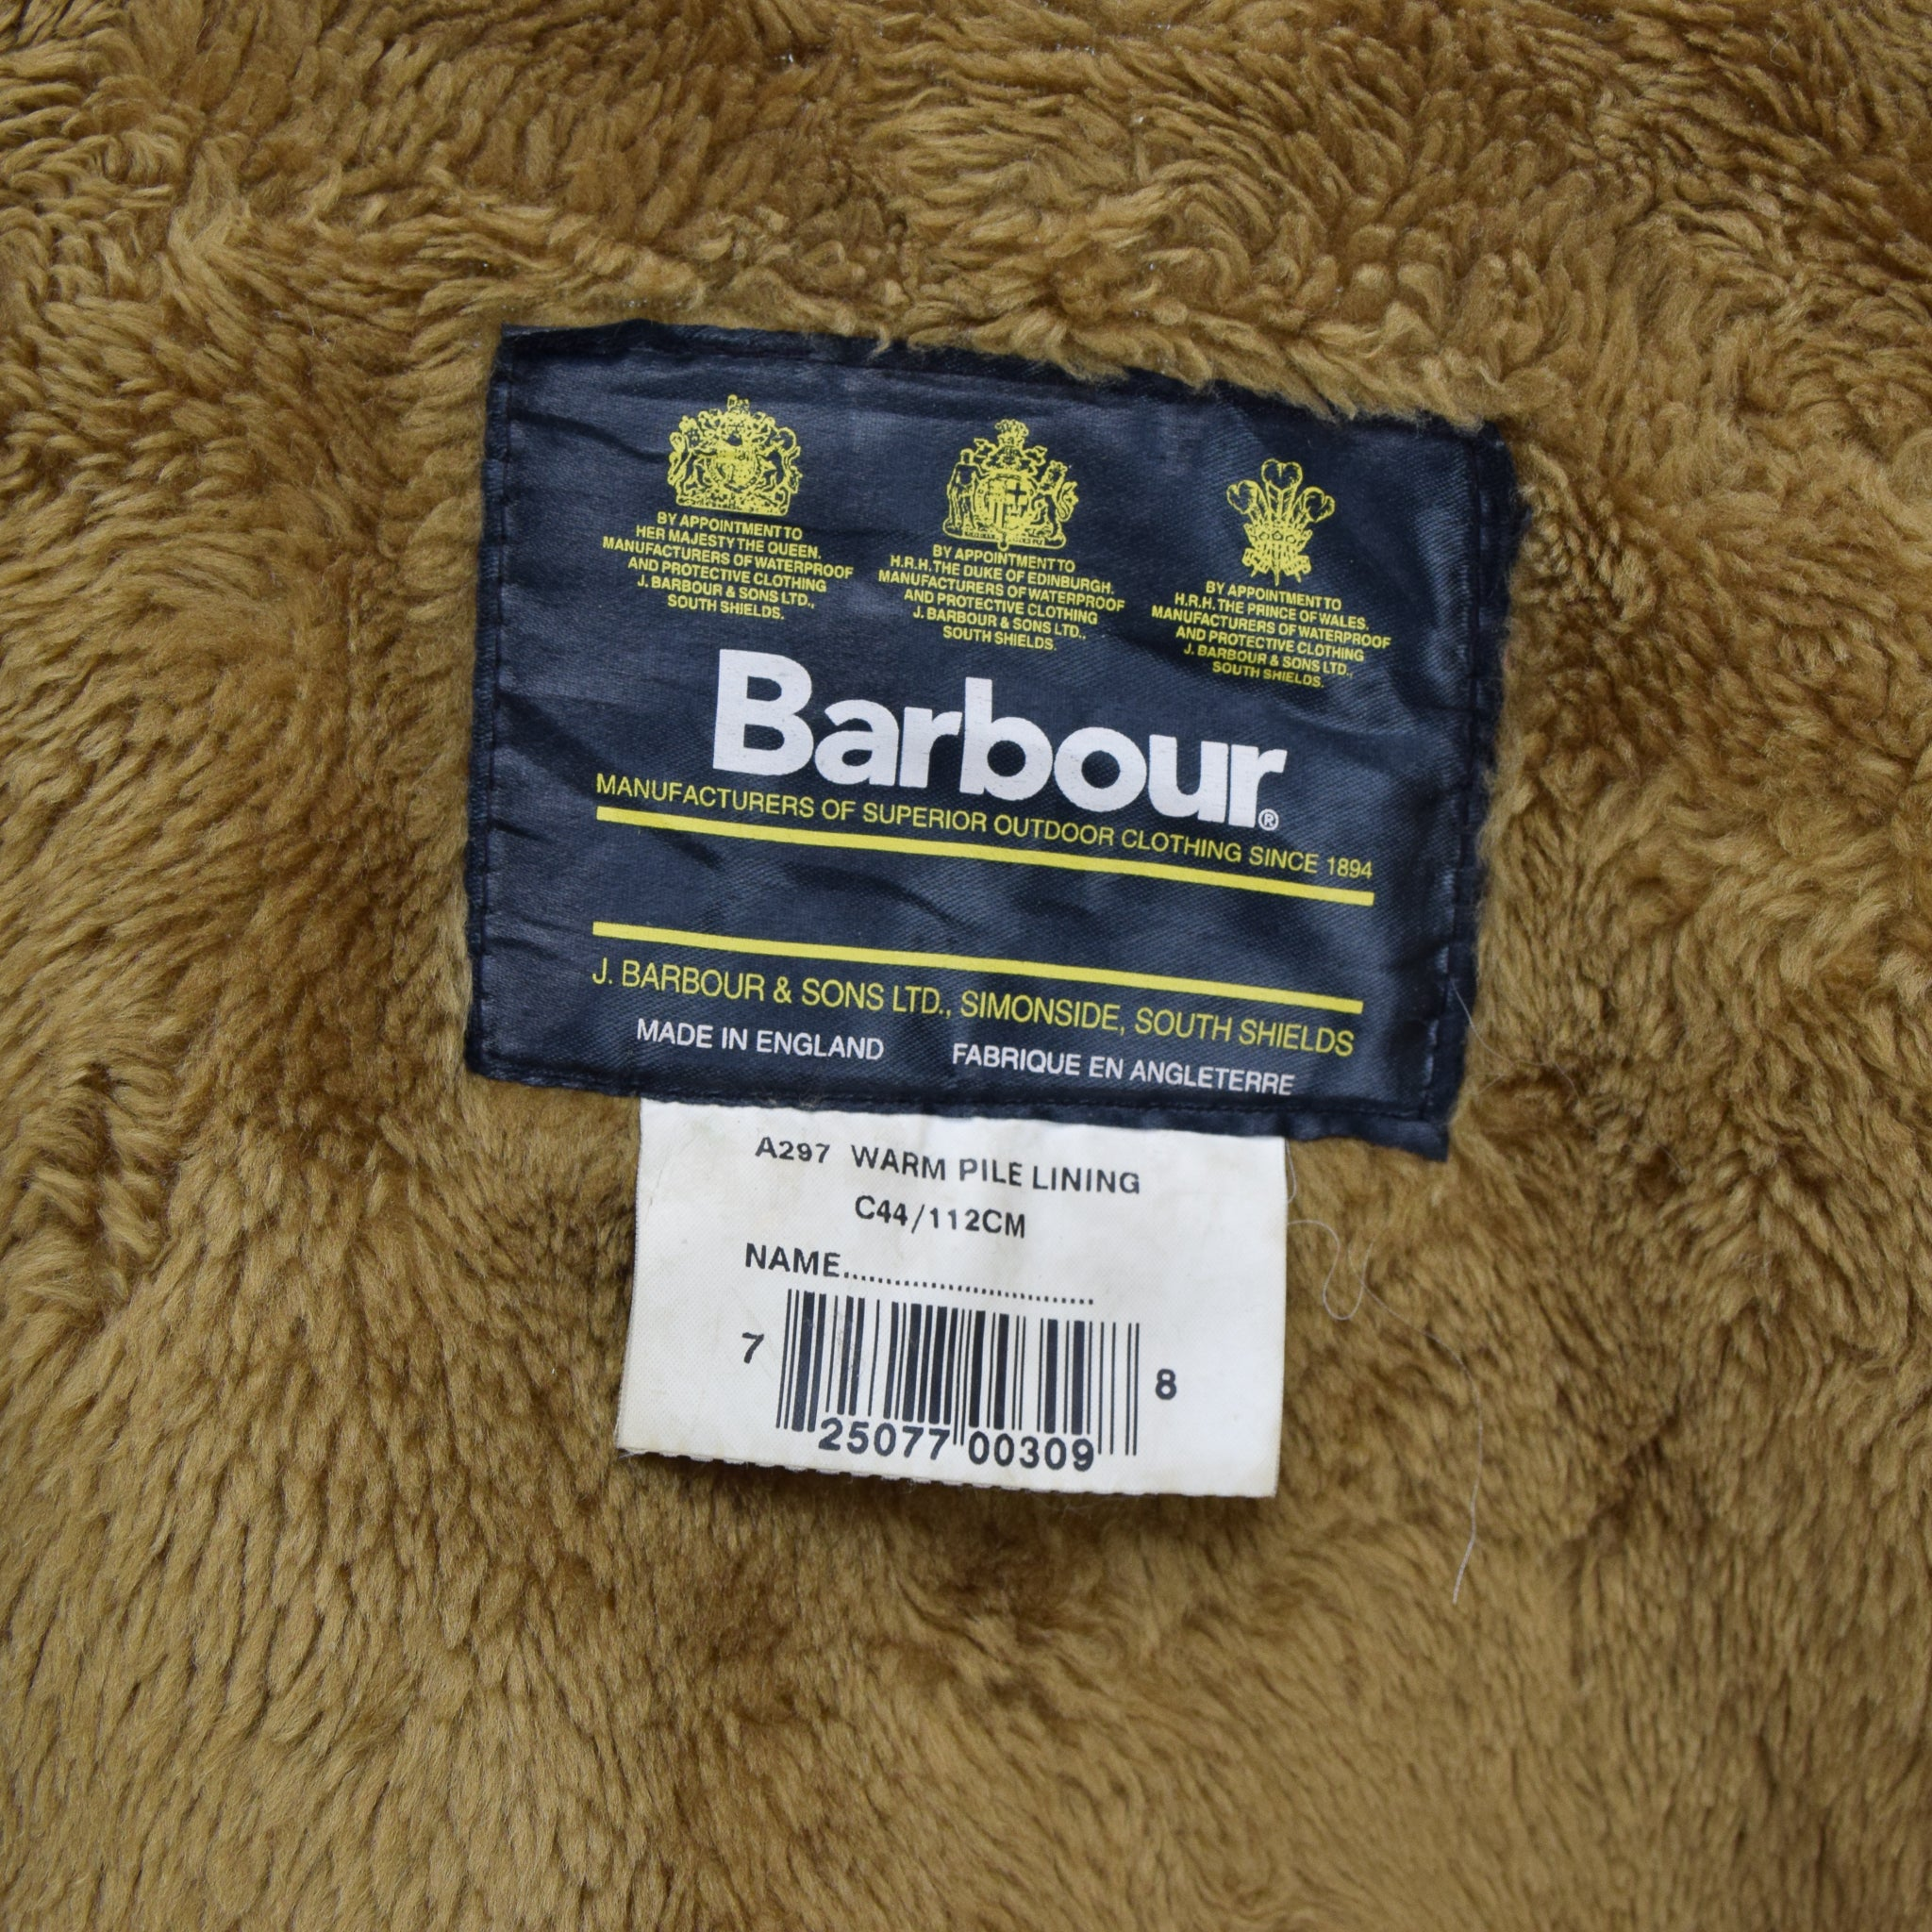 Vintage Barbour A297 Warm Pile Lining Faux Fur Liner Made In England C44 / 112cm label